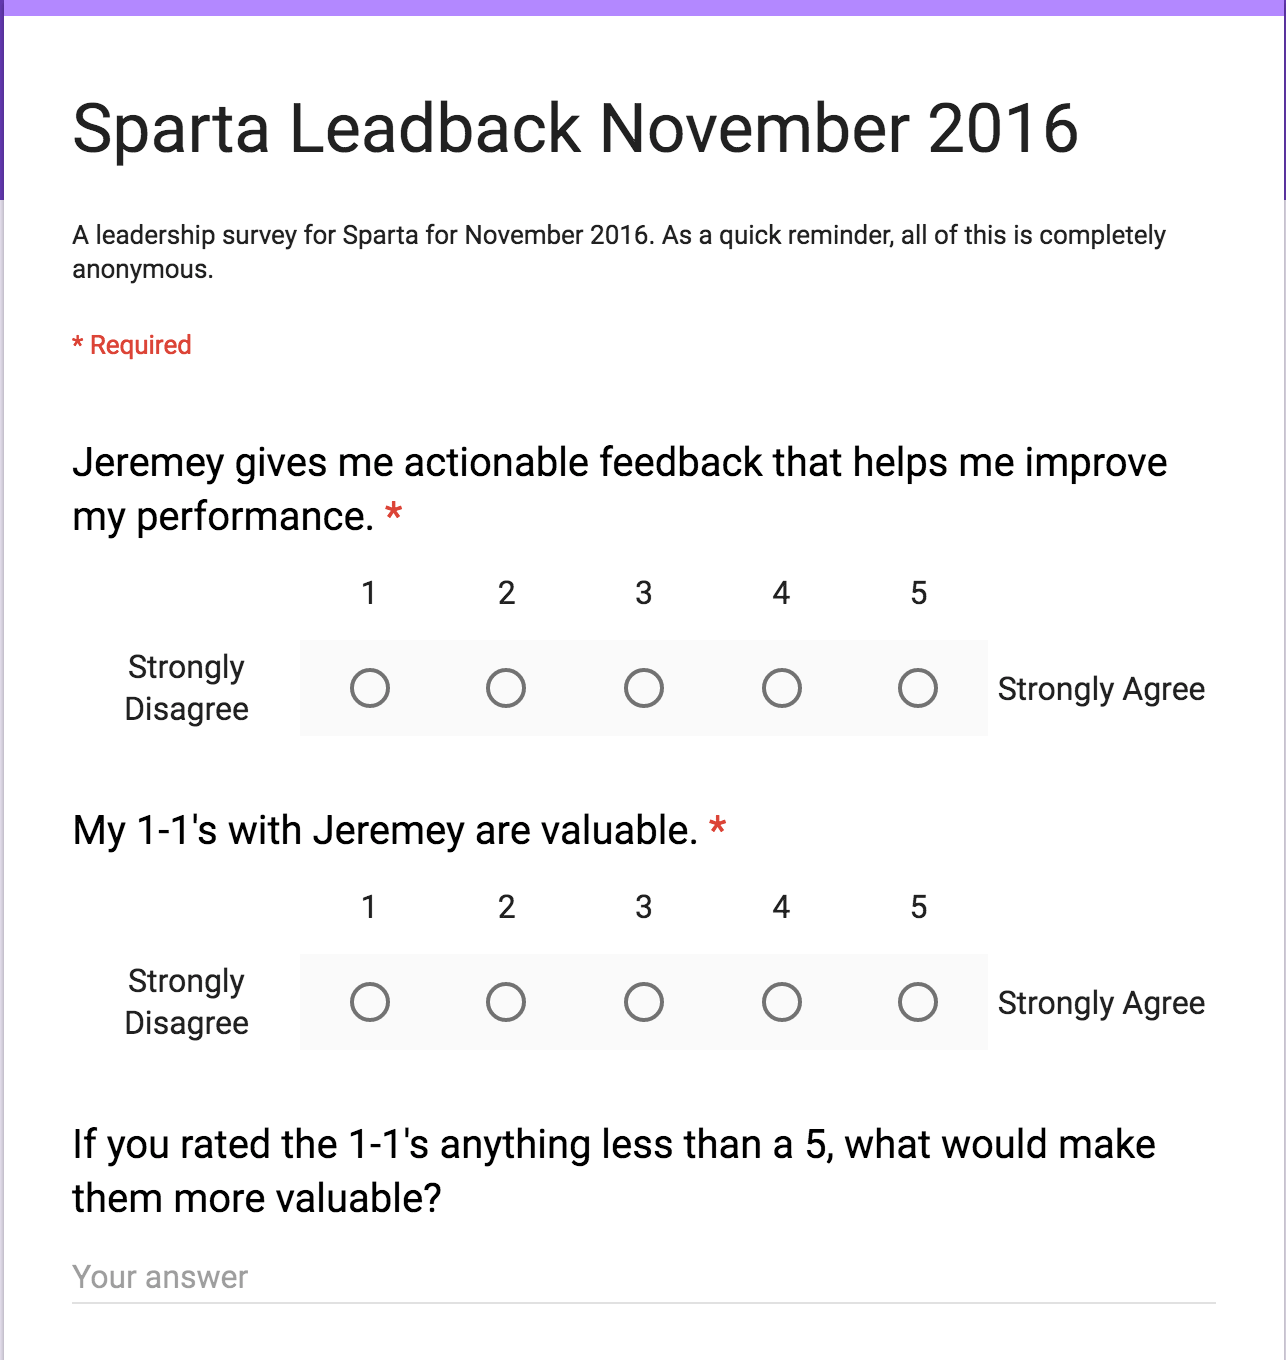 An example of a leadback survey used for Sparta